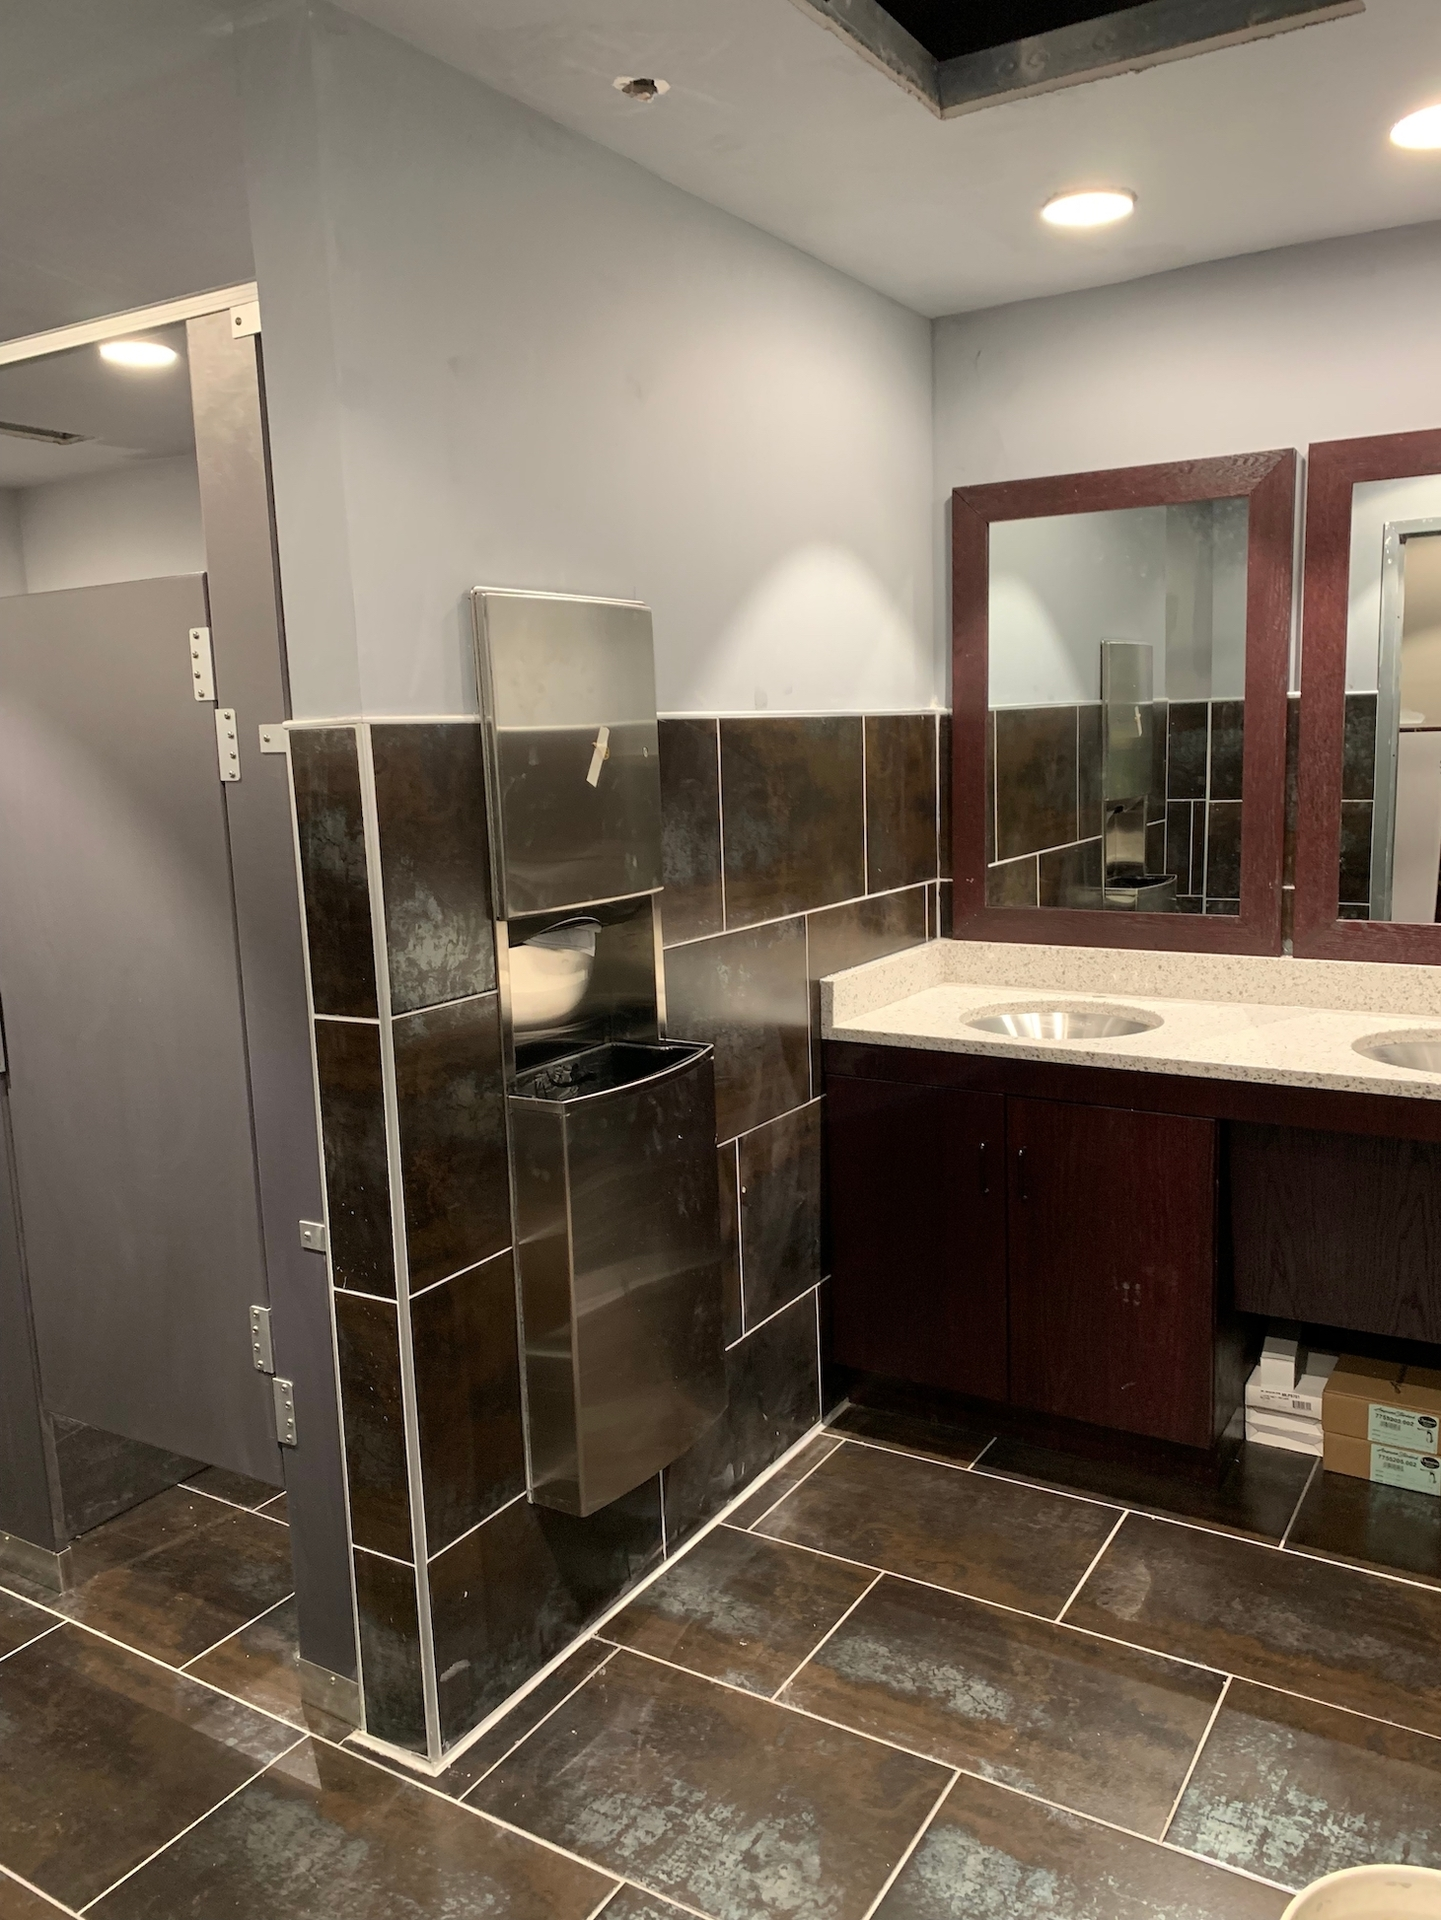 Modern and updated bathroom at Black Rock Bar & Grill in Beavercreek, OH by Dras Cases.